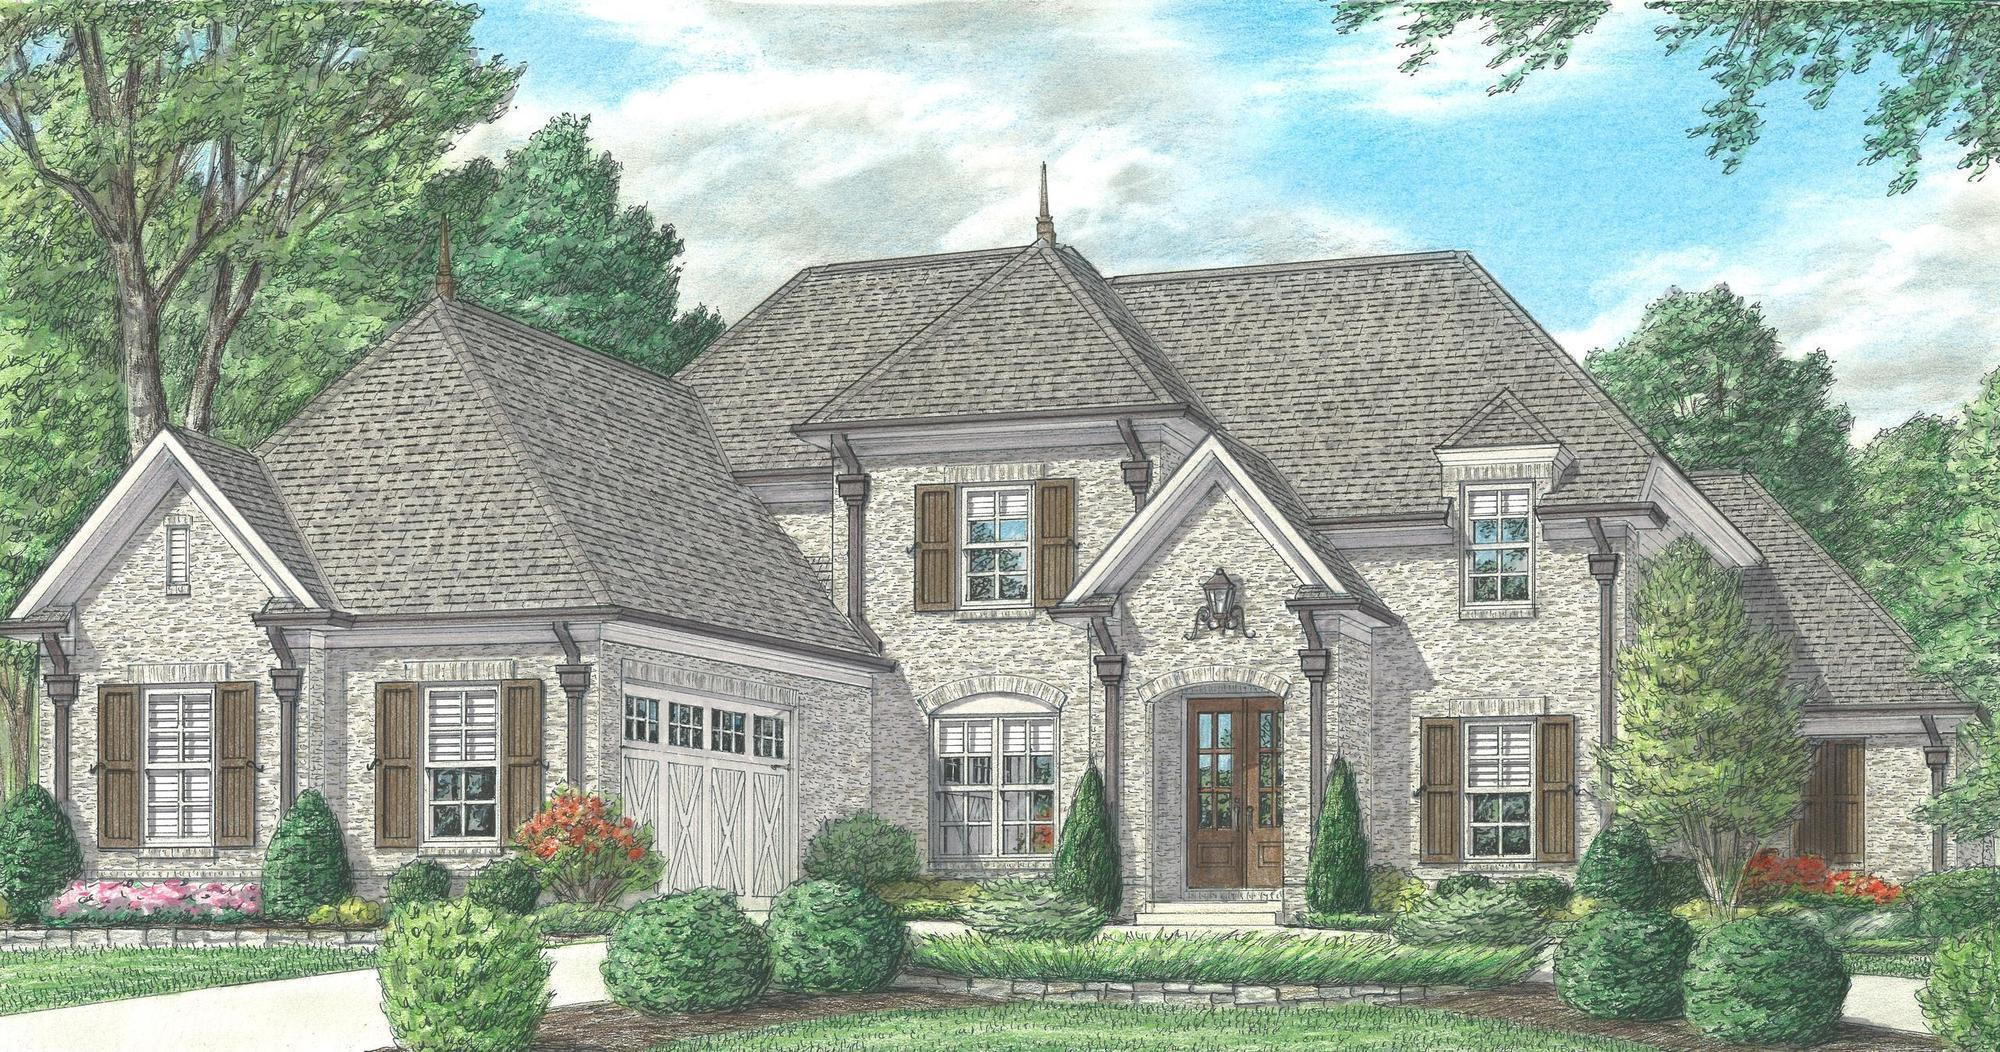 'Kensington Manor' by Regency Homebuilders in Memphis